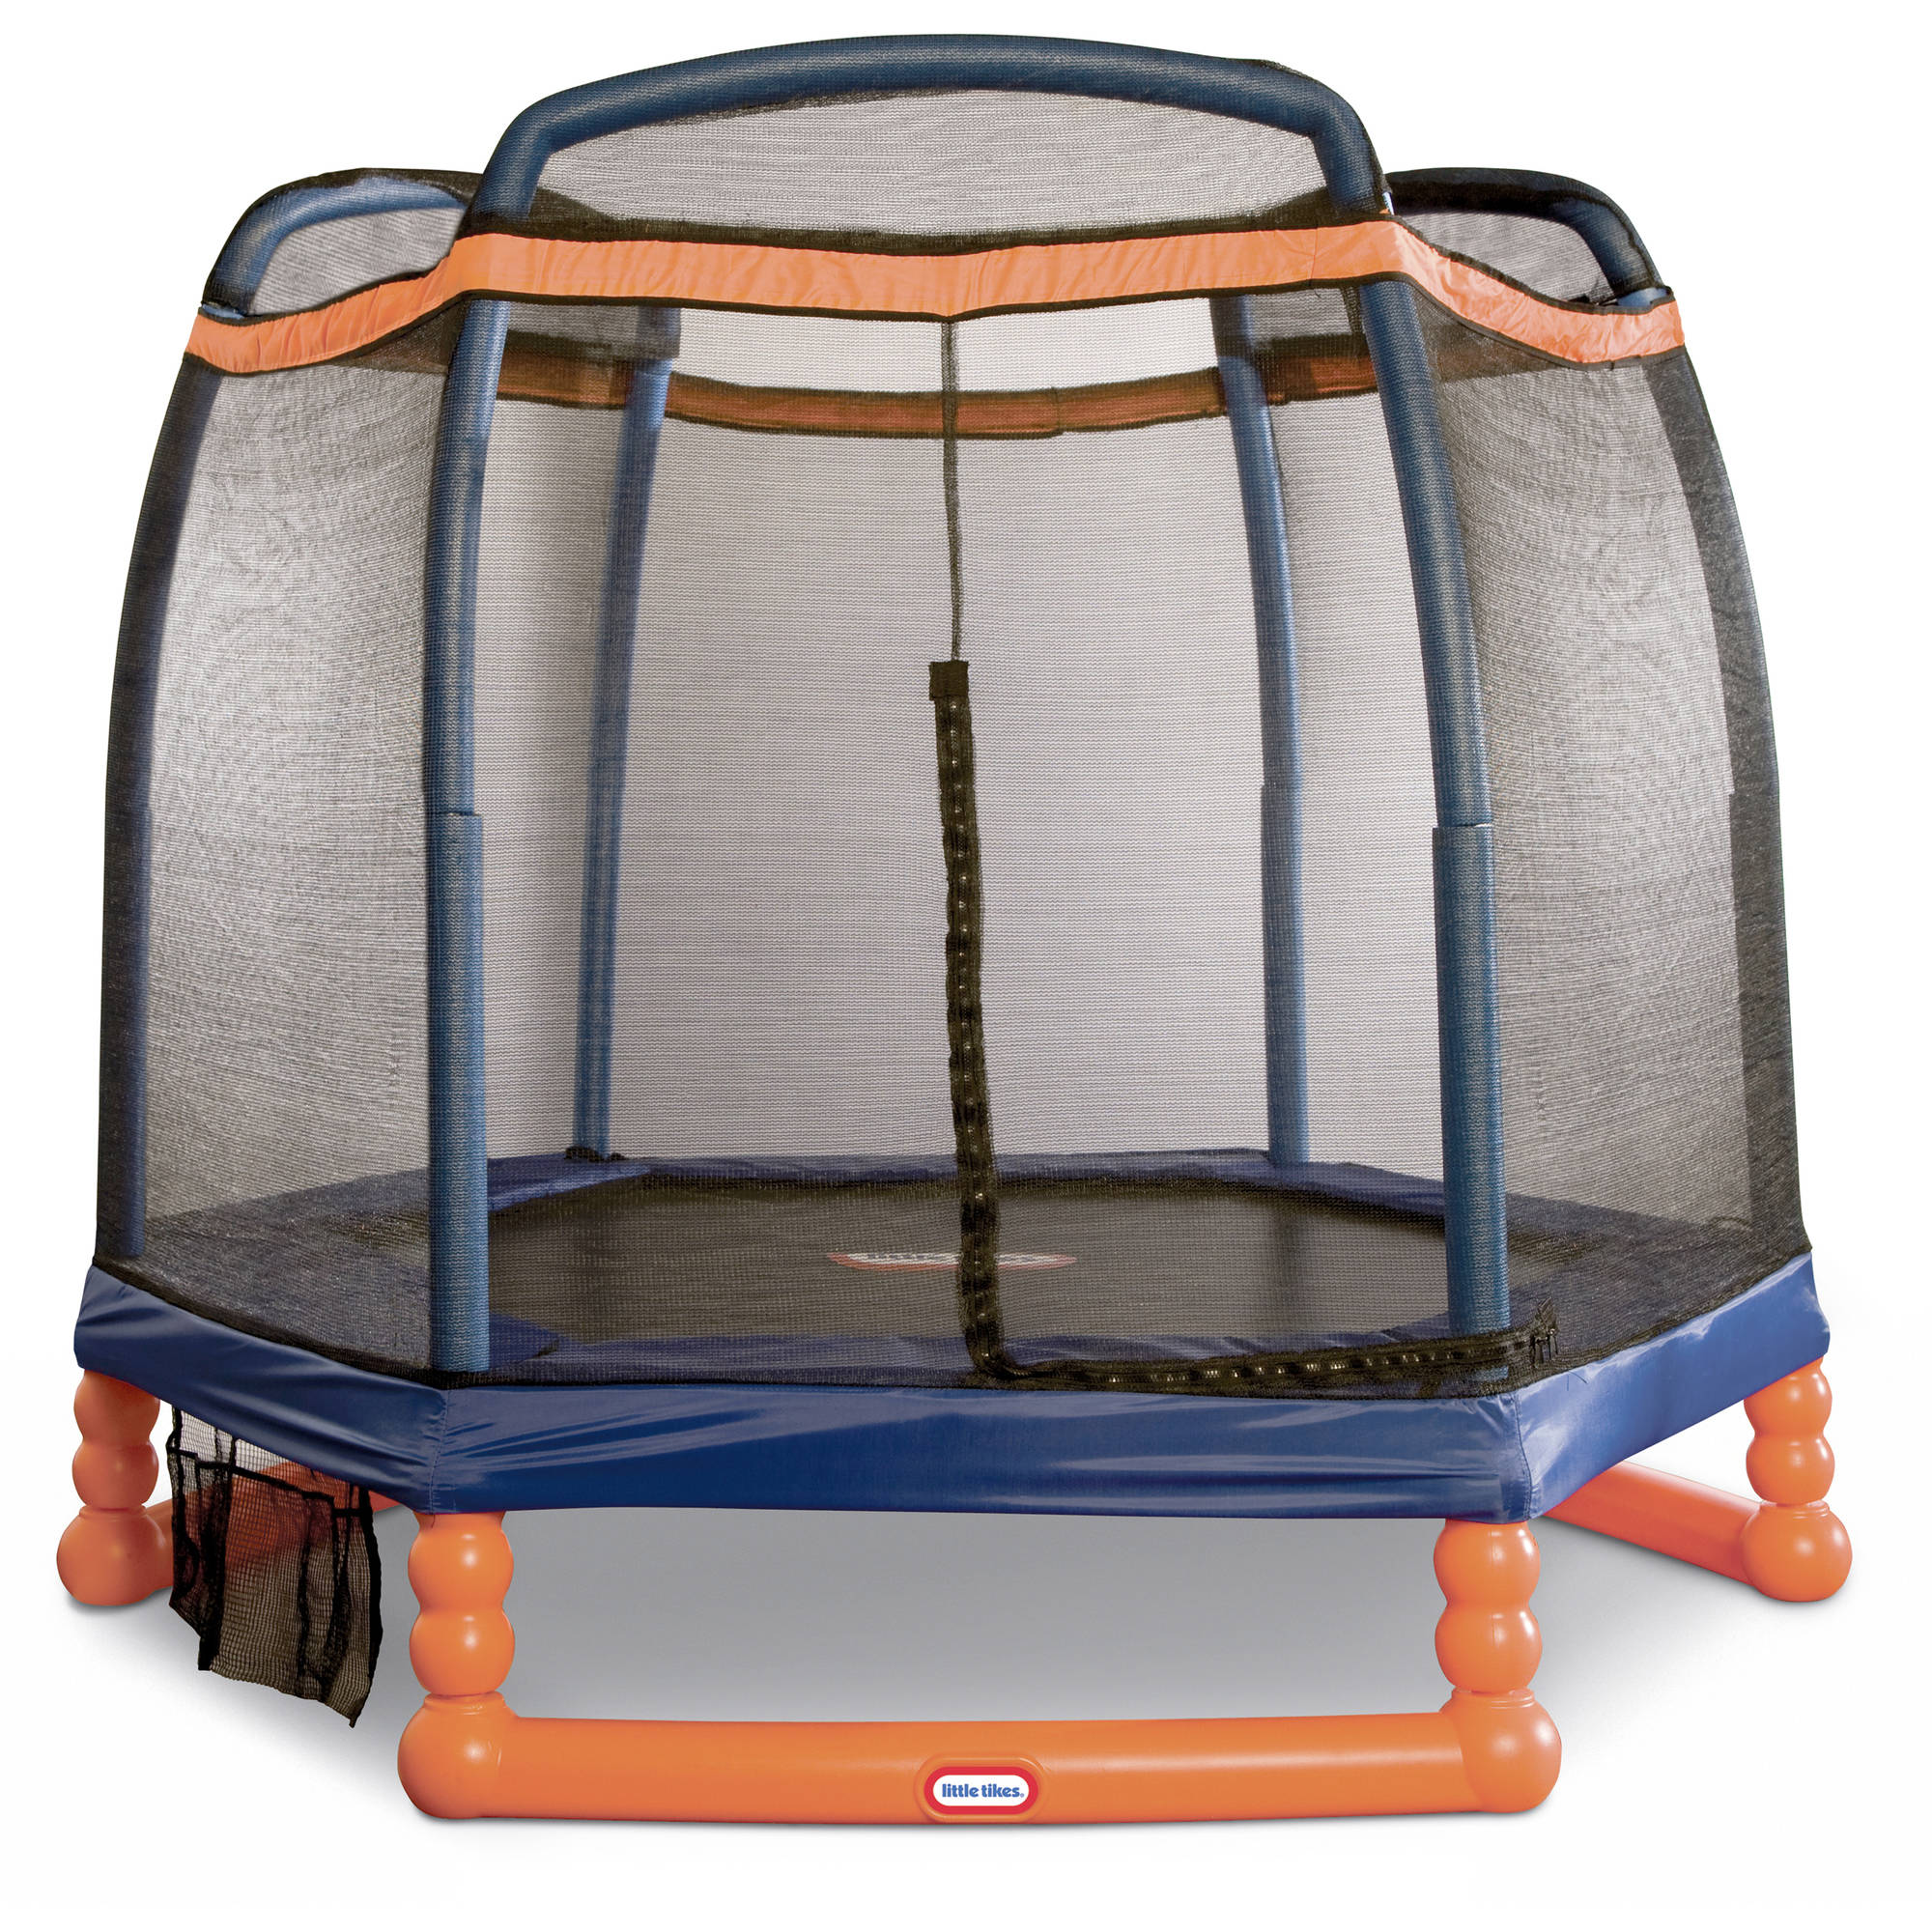 Little Tikes 7-Foot Trampoline, with Enclosure and Padded Frame, Blue/Orange